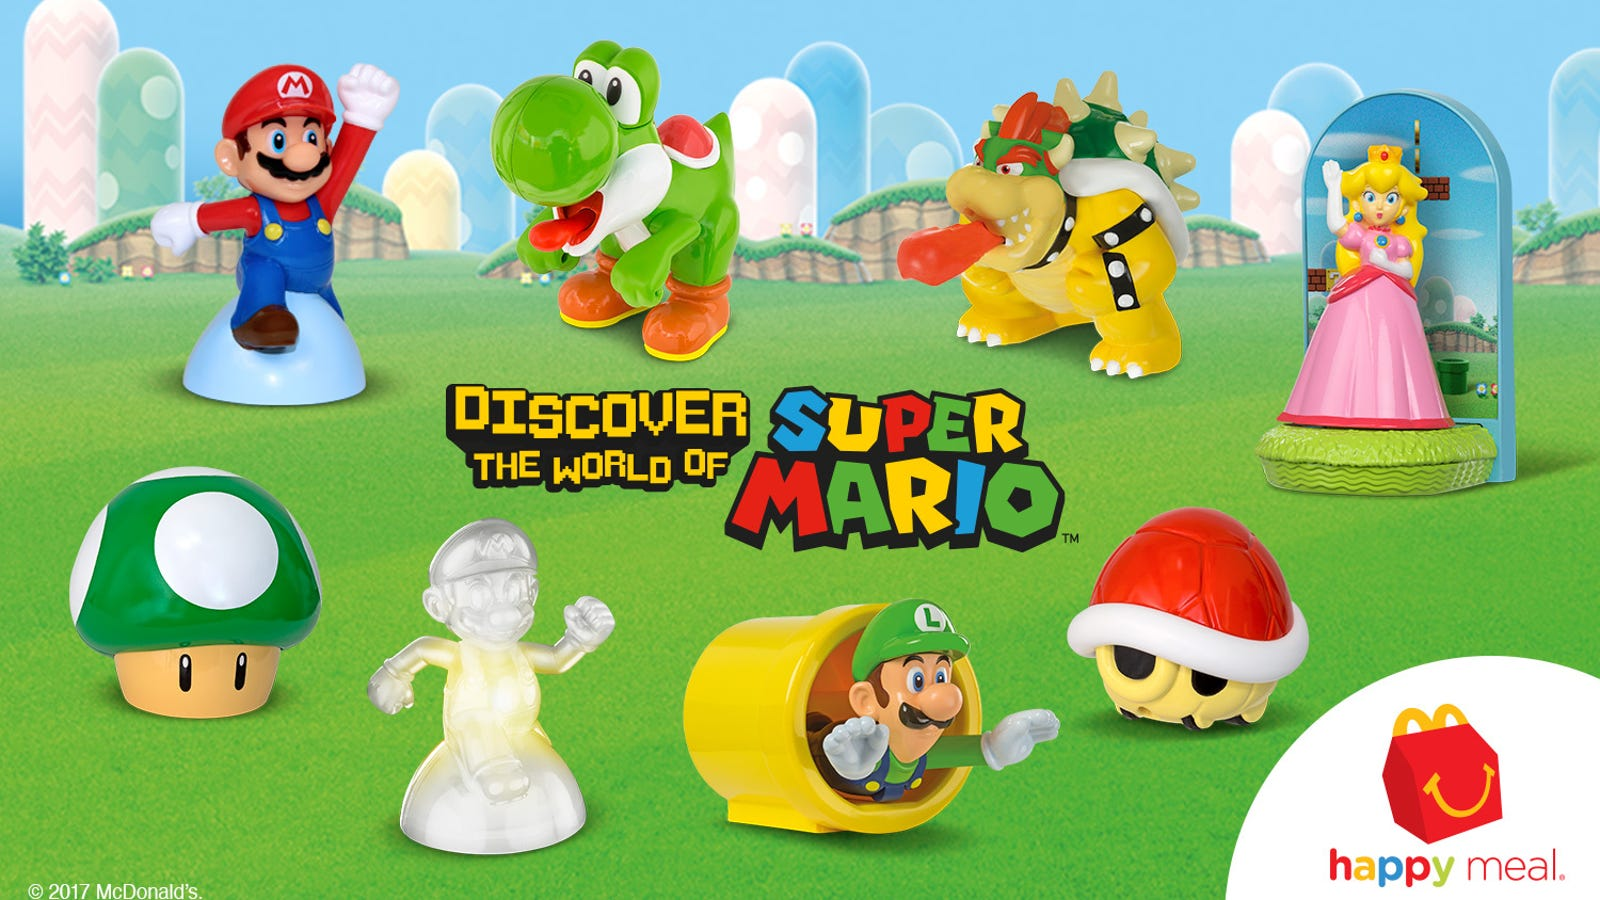 You Dont Have To Eat McDonalds Get Super Mario Happy Meal Toys